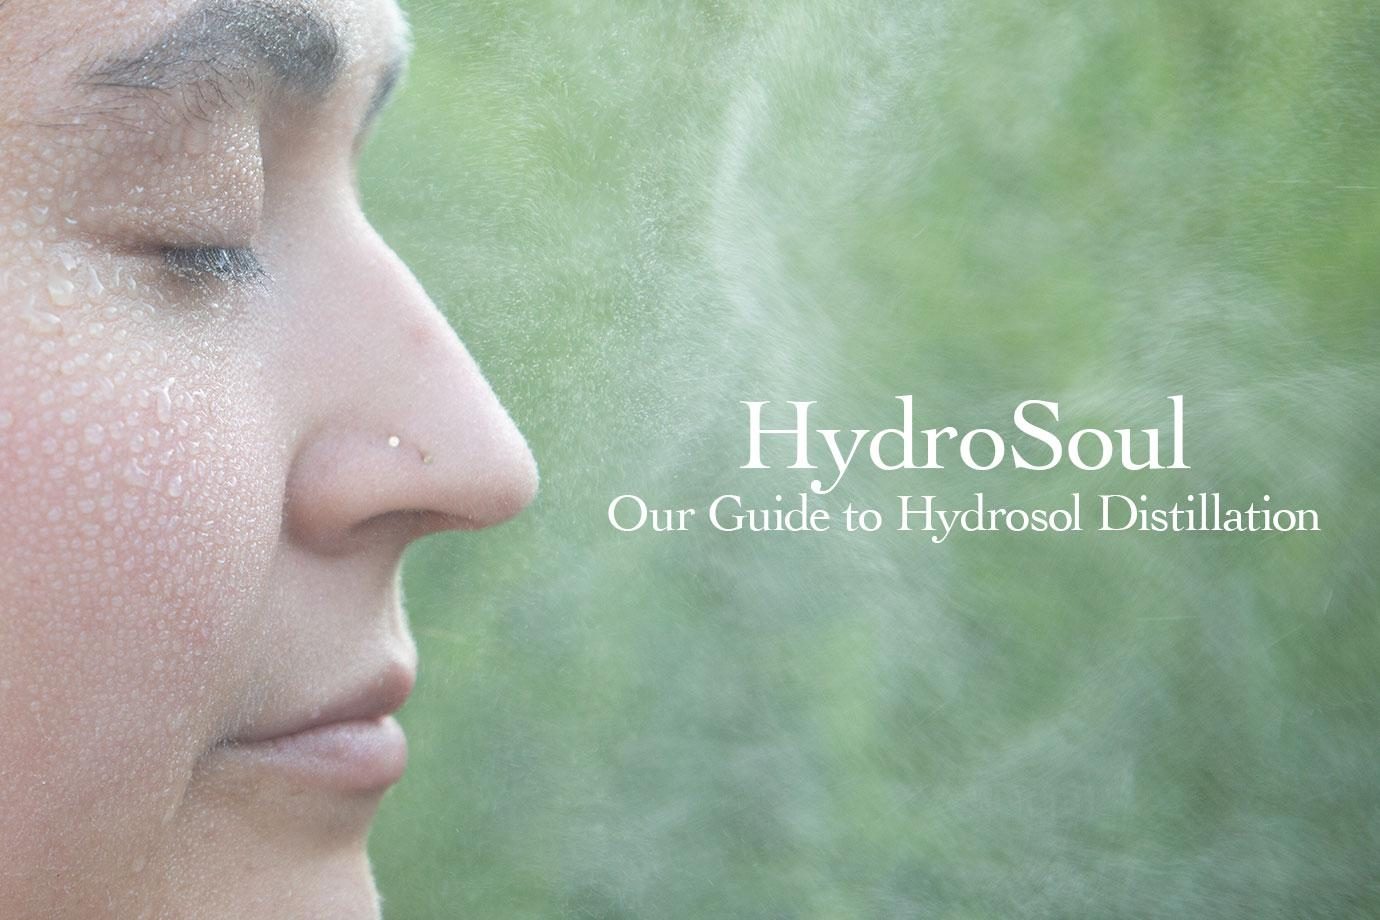 HydroSoul Skin Care Resources - evanhealy